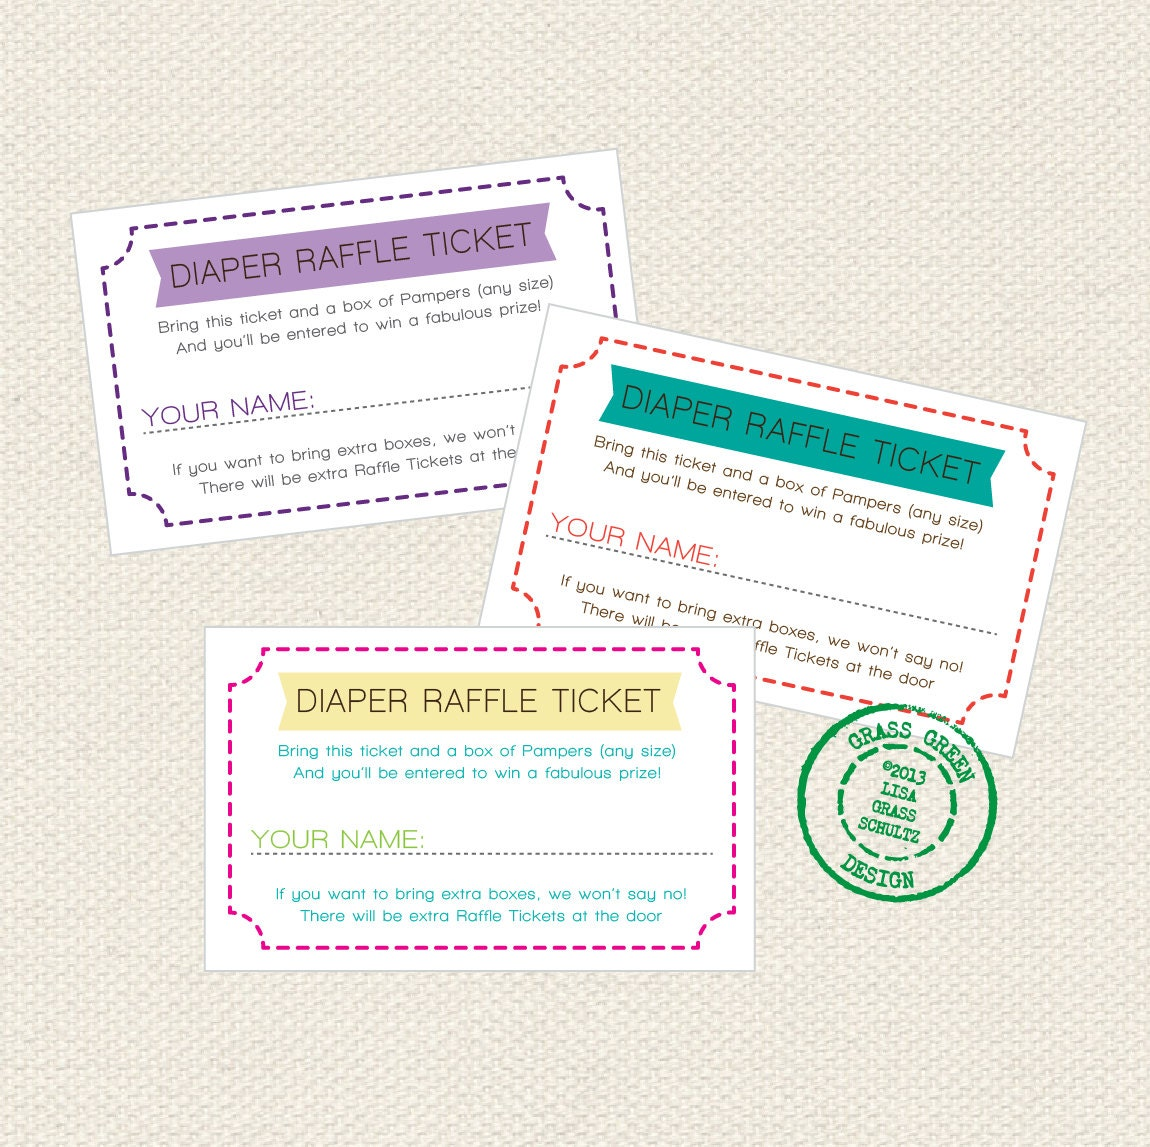 Free Printable Diaper Raffle Tickets Printable diaper raffle